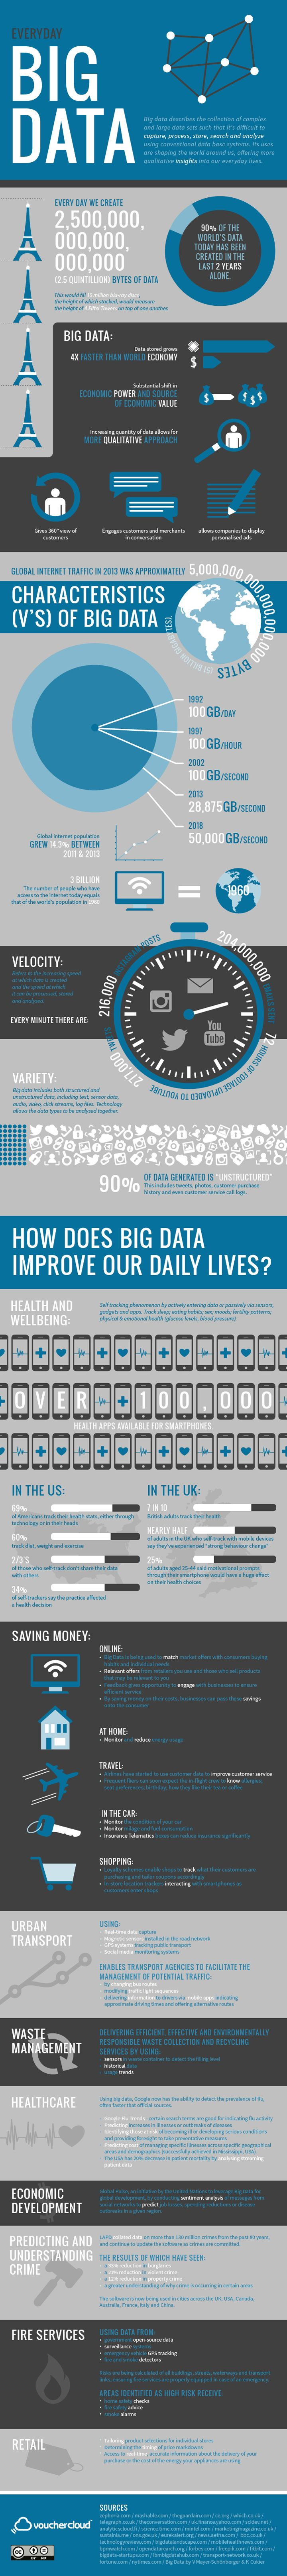 What Is Big Data And How Can It Help Improve Your Daily Life? #bigdata #infographic